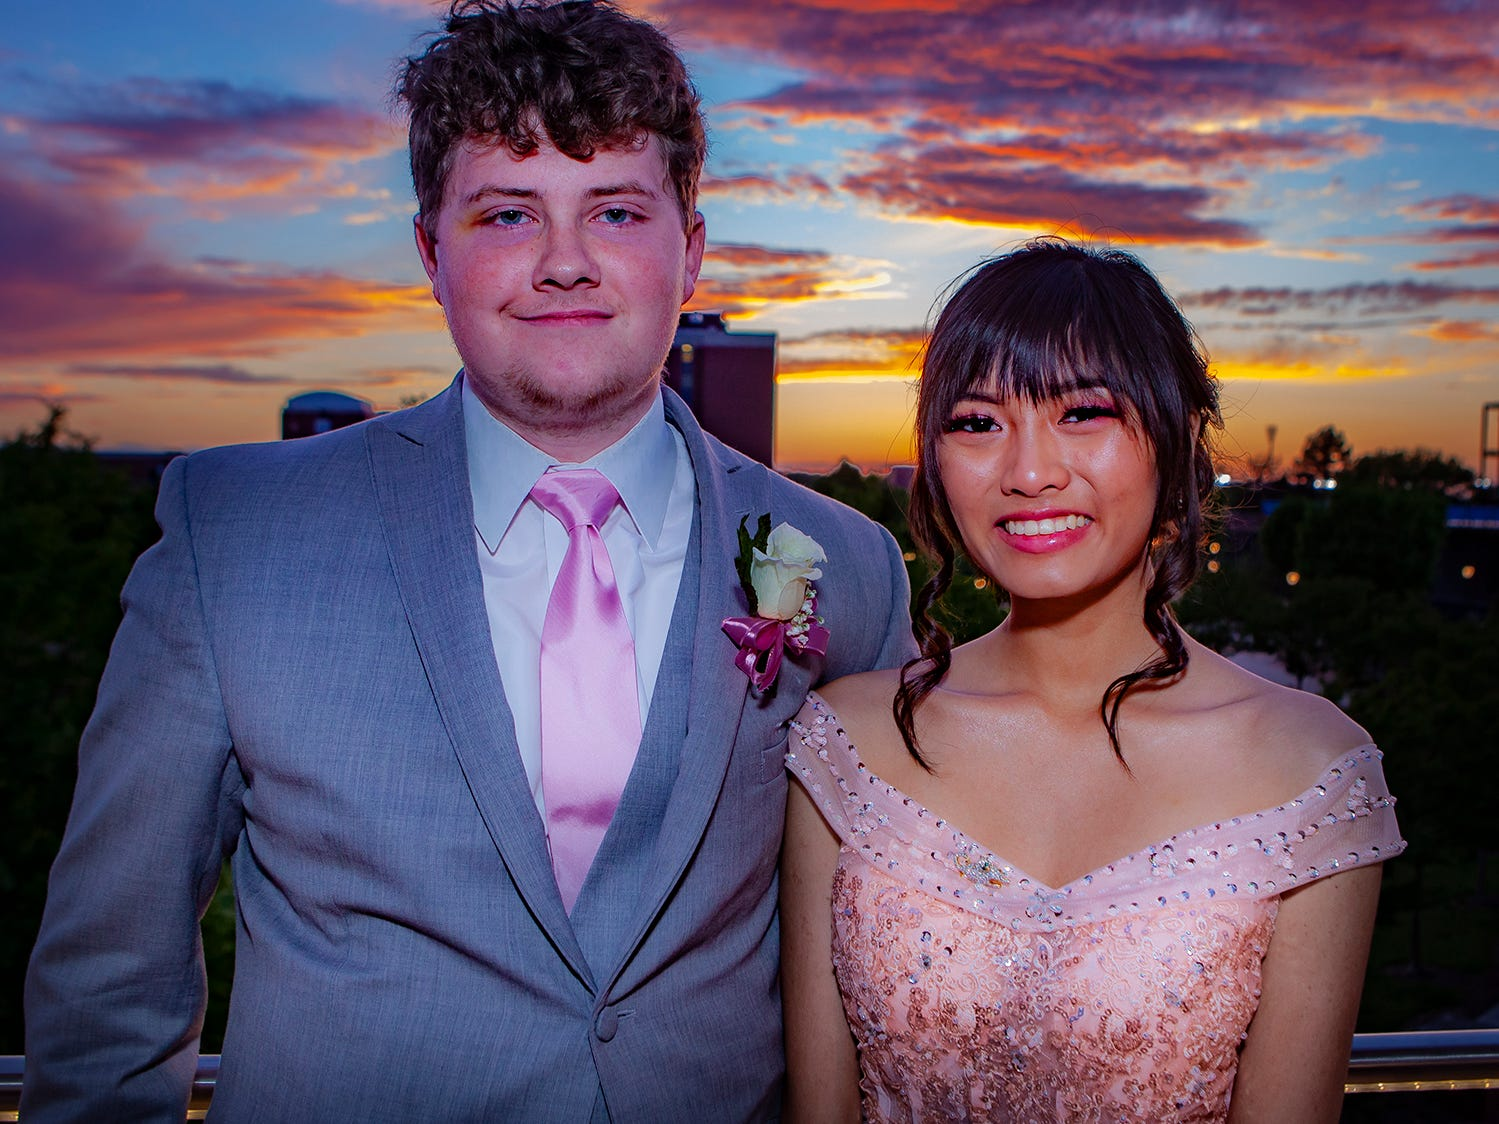 Riverdale's prom, held Saturday, April 27, 2019 at MTSU's Student Union Building.